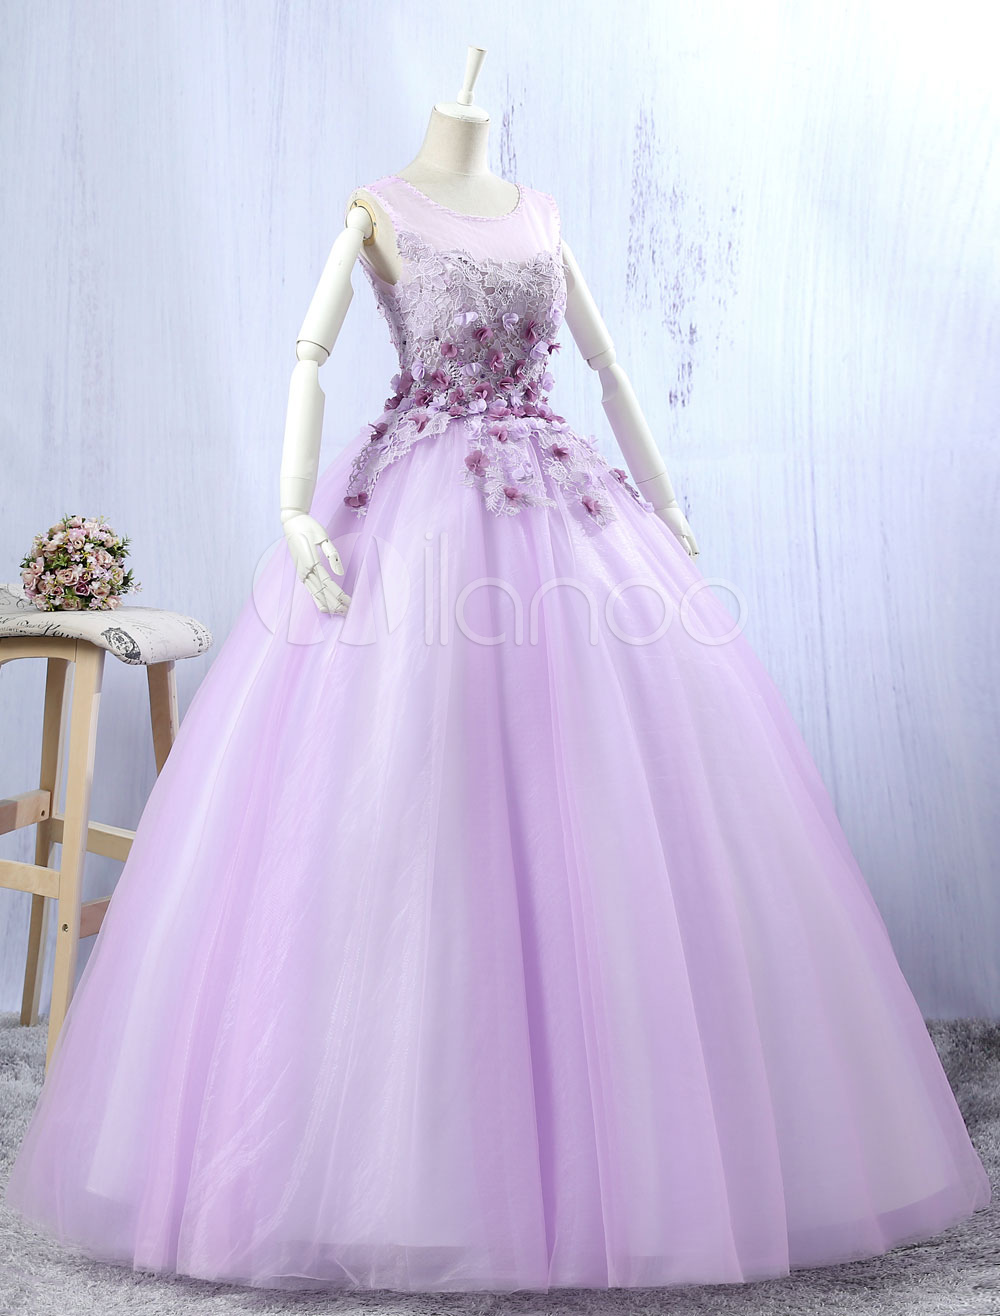 Lilac Quinceanera Dresses Tulle Ball Gown Lace 3D Flowers Beading Illusion Sleeveless Floor Length Princess Pageant Dresses